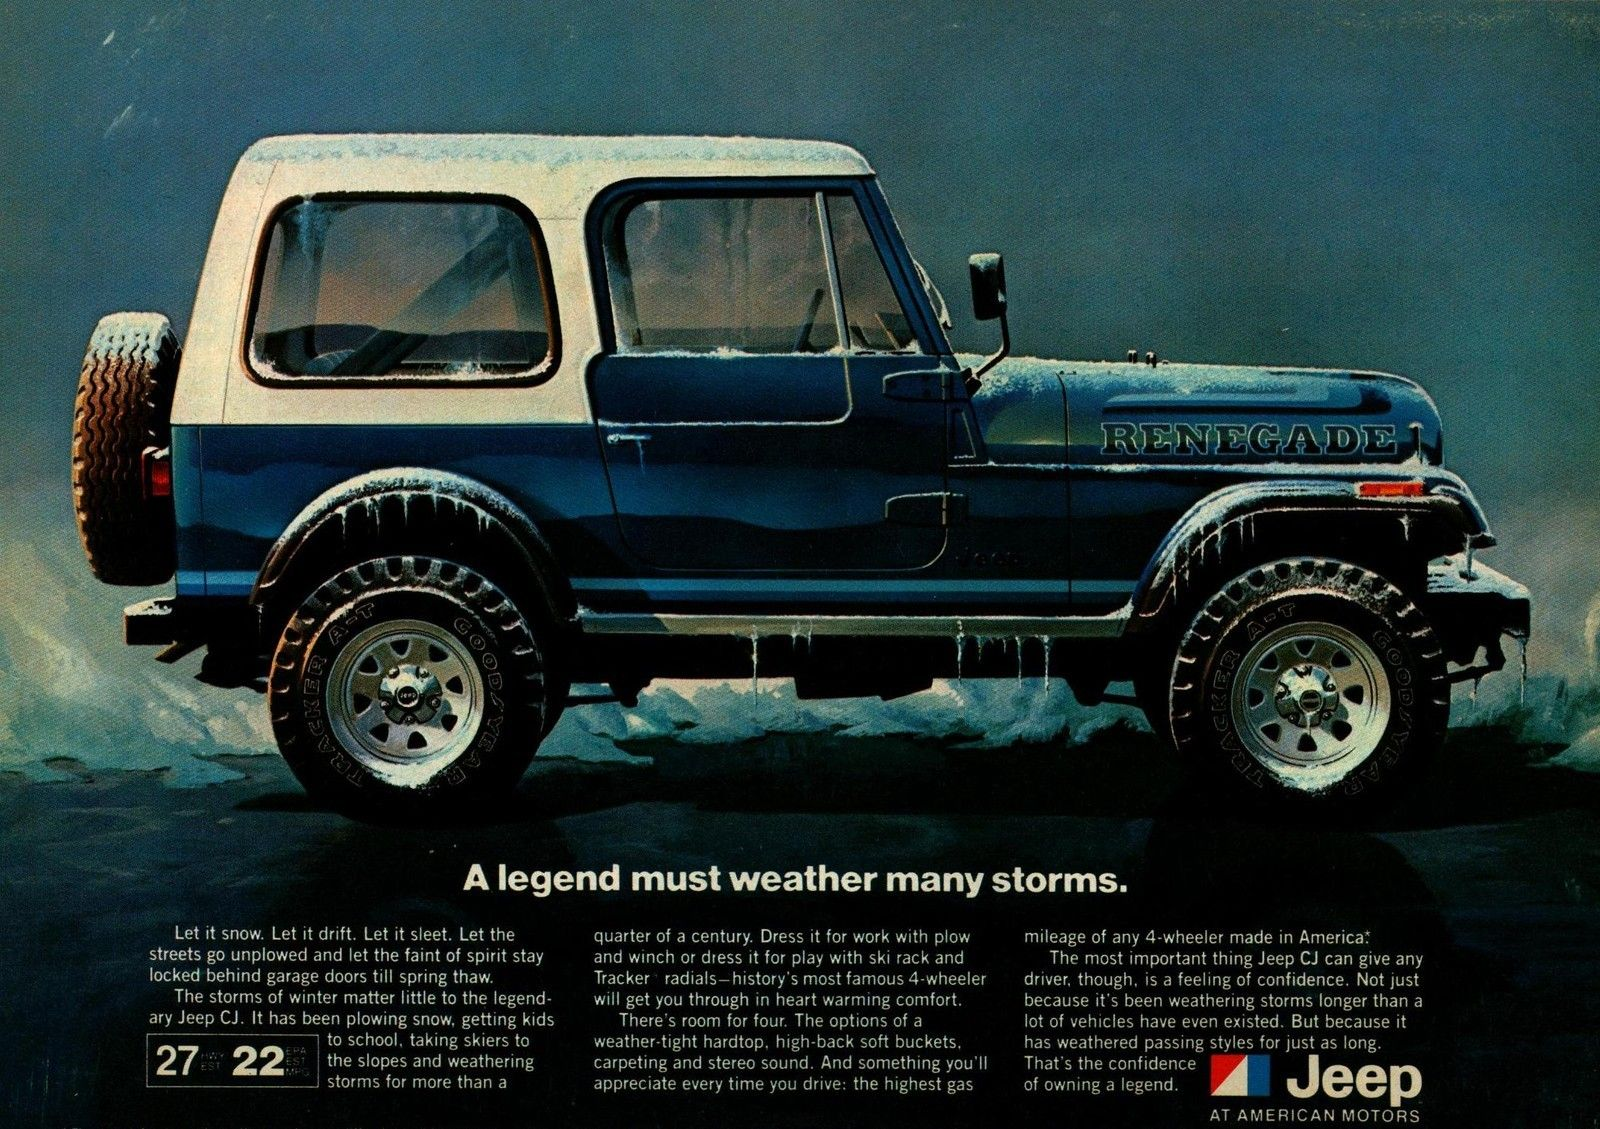 1981 Jeep Blue Renegade Winter Storm Original Color Vintage Ad